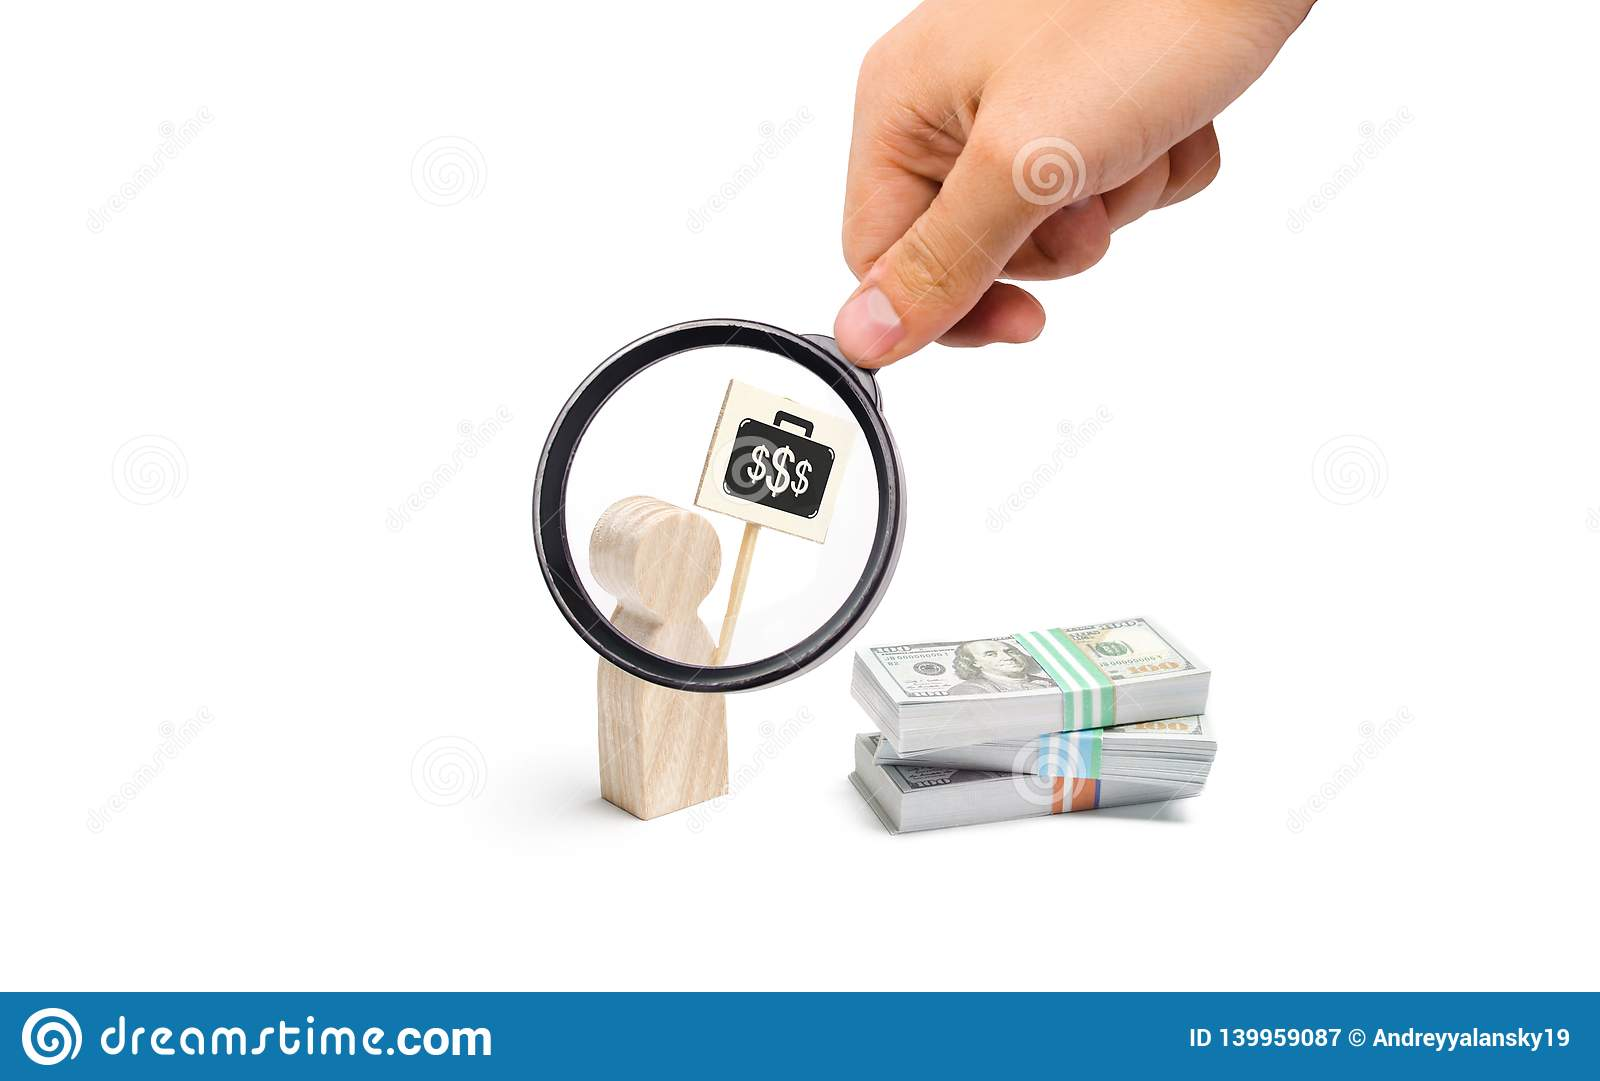 Magnifying glass is looking at the man figurine with a poster agitates near a pile of money. finding a better paid job. Financial